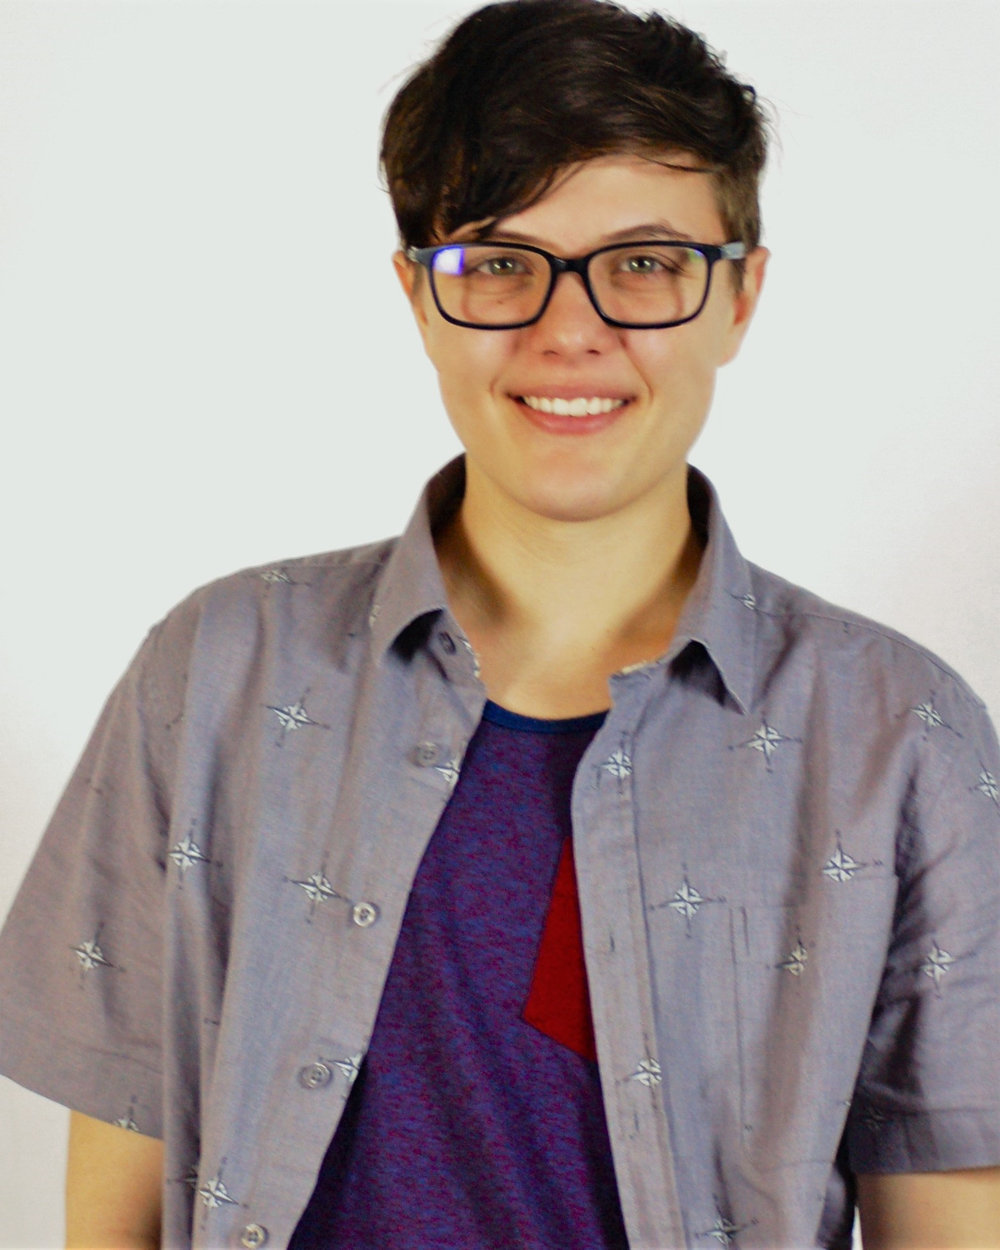 Vin Ernst (they/them/theirs)